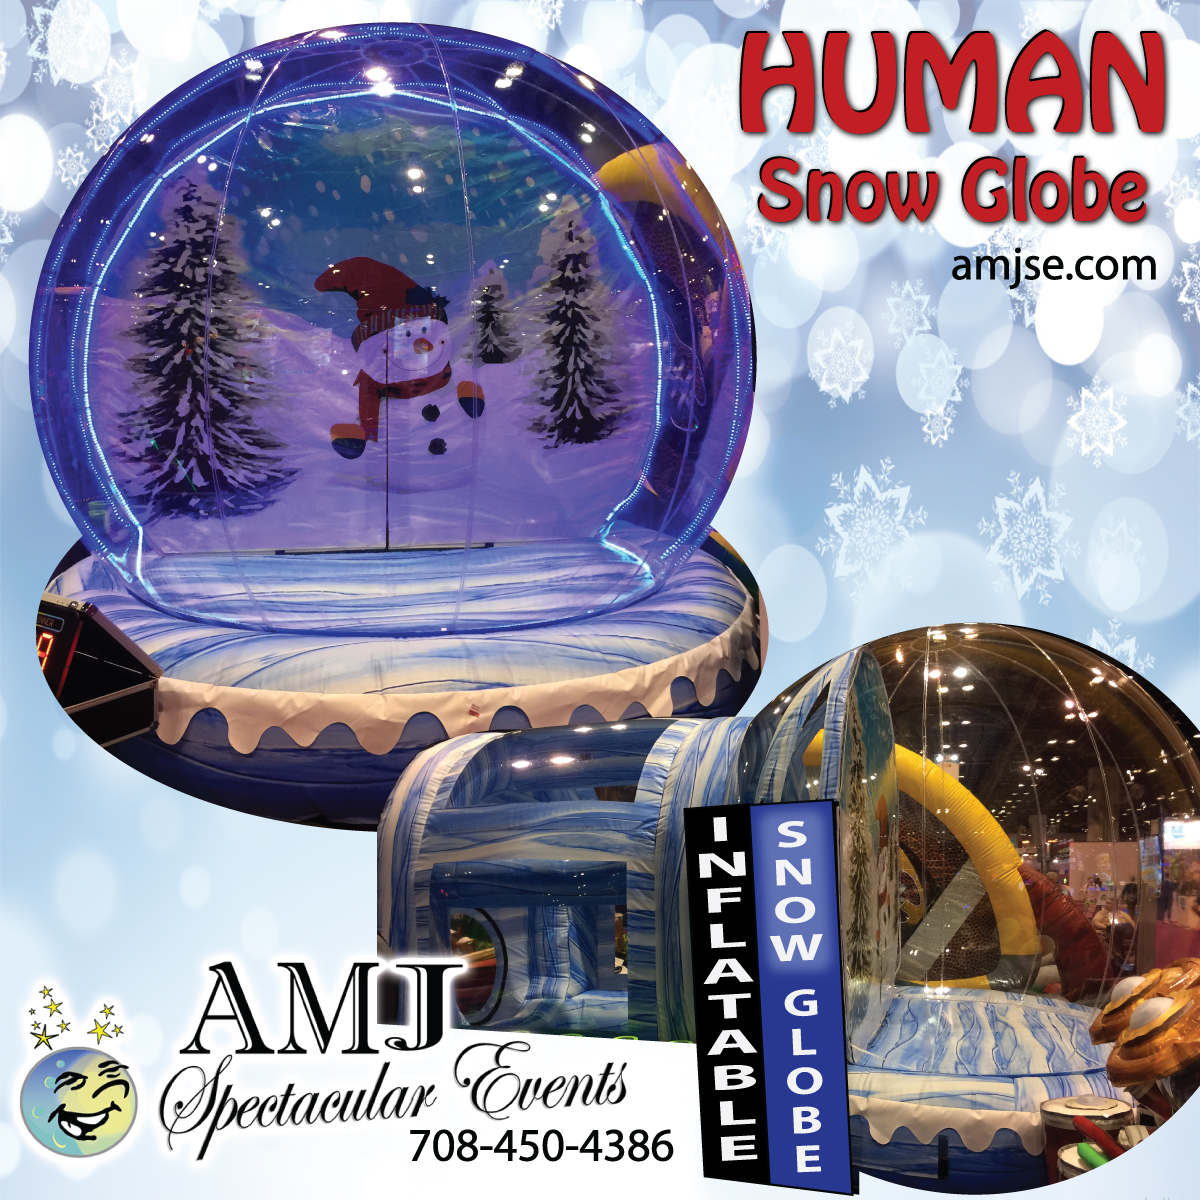 AMJ Spectacular-Events is A Moon Jump 4U heres the inflatable Human Snow Globe Christmas Rentals4U